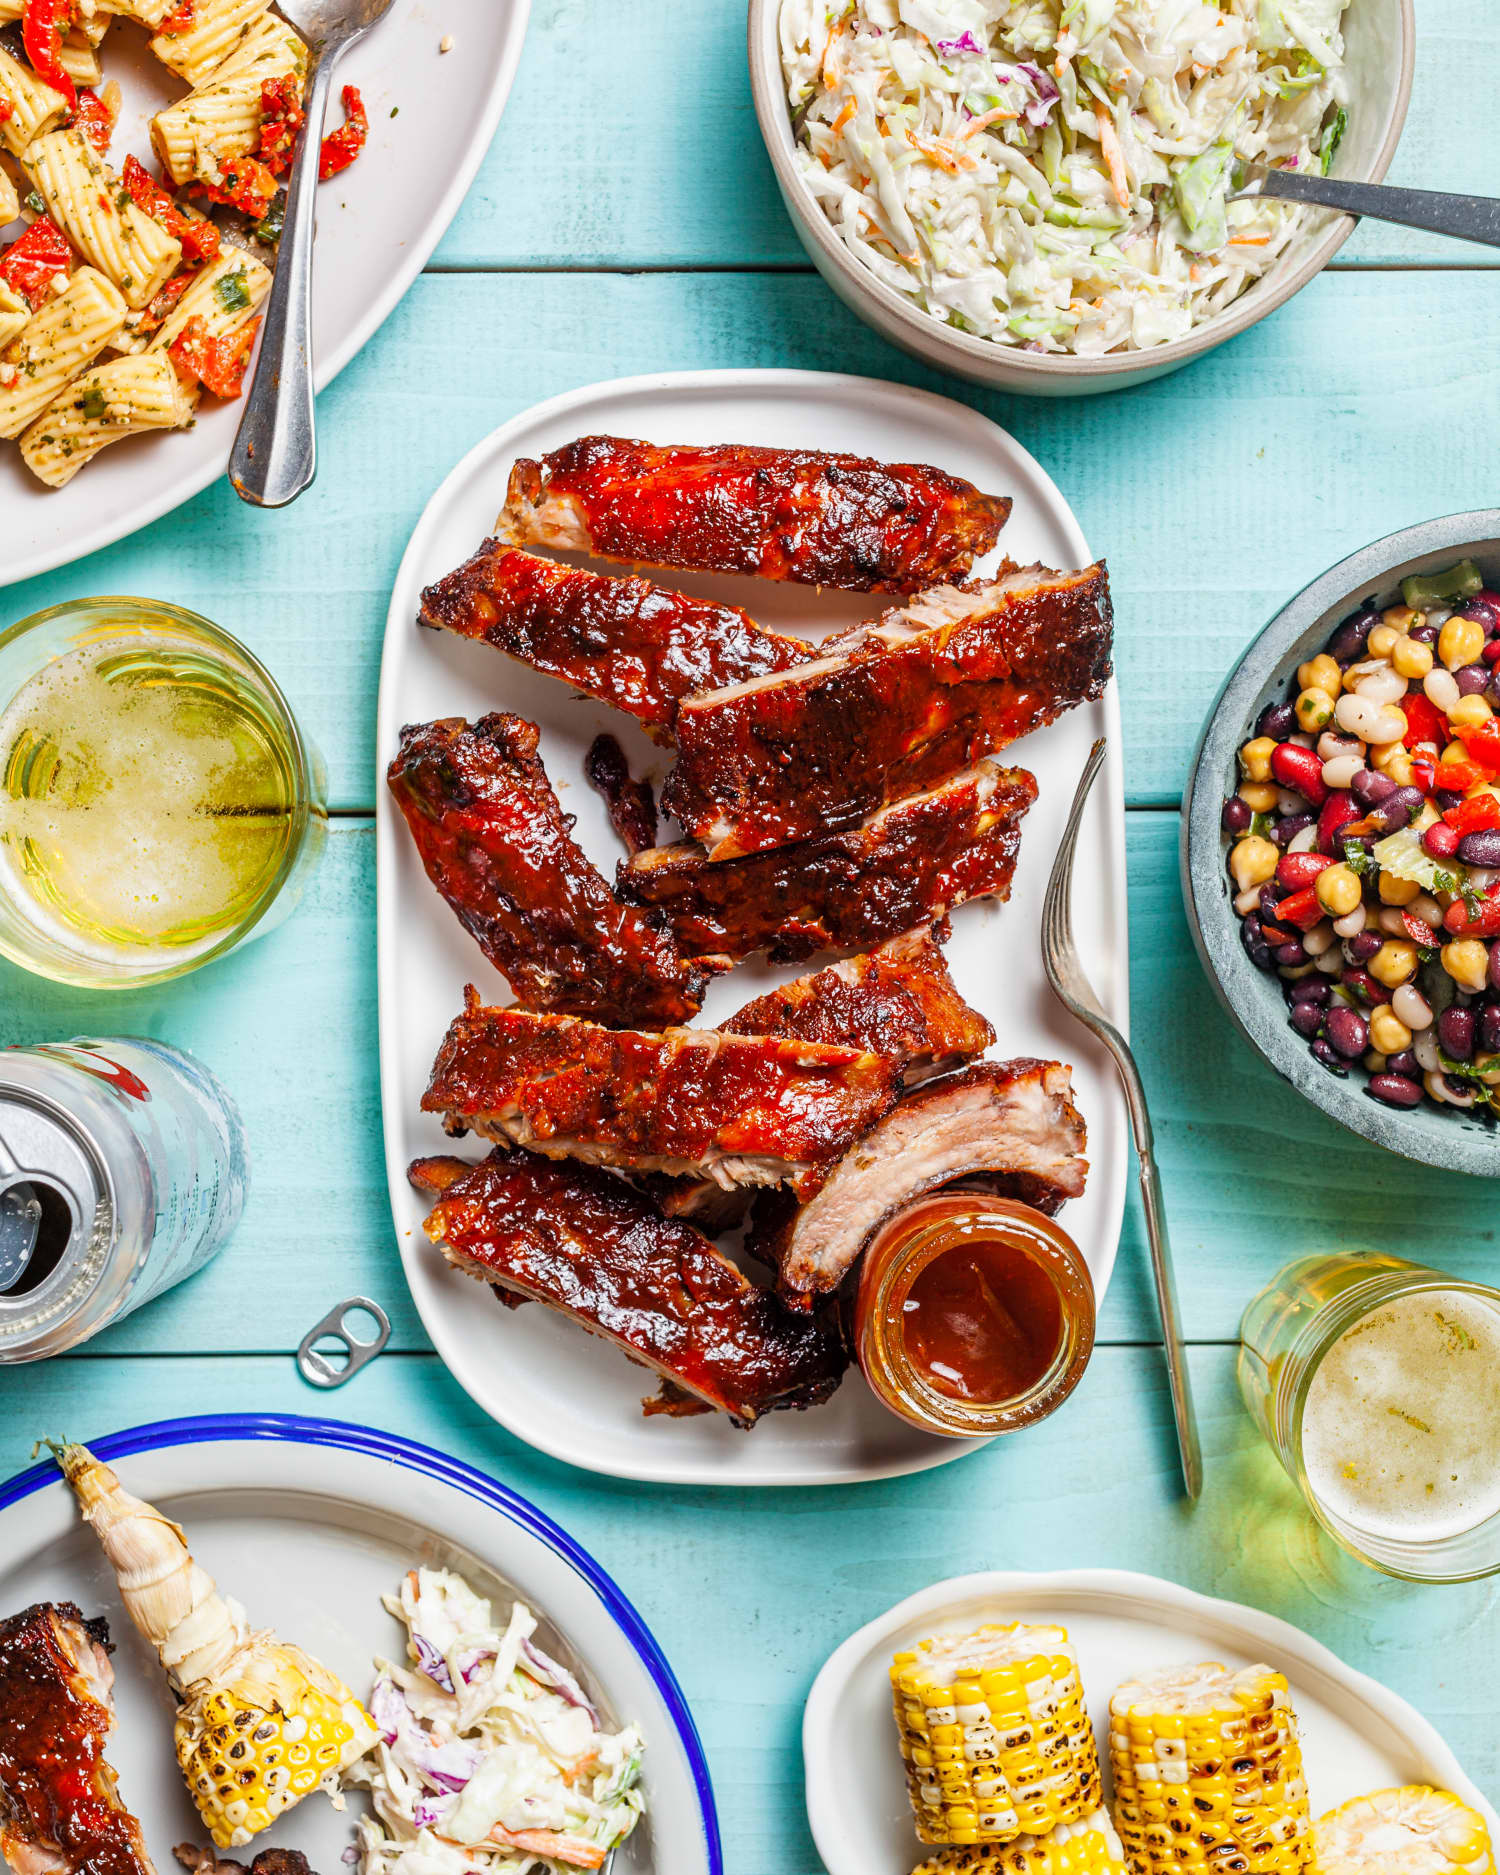 25 + Impressive Main Dishes for Your Labor Day BBQ